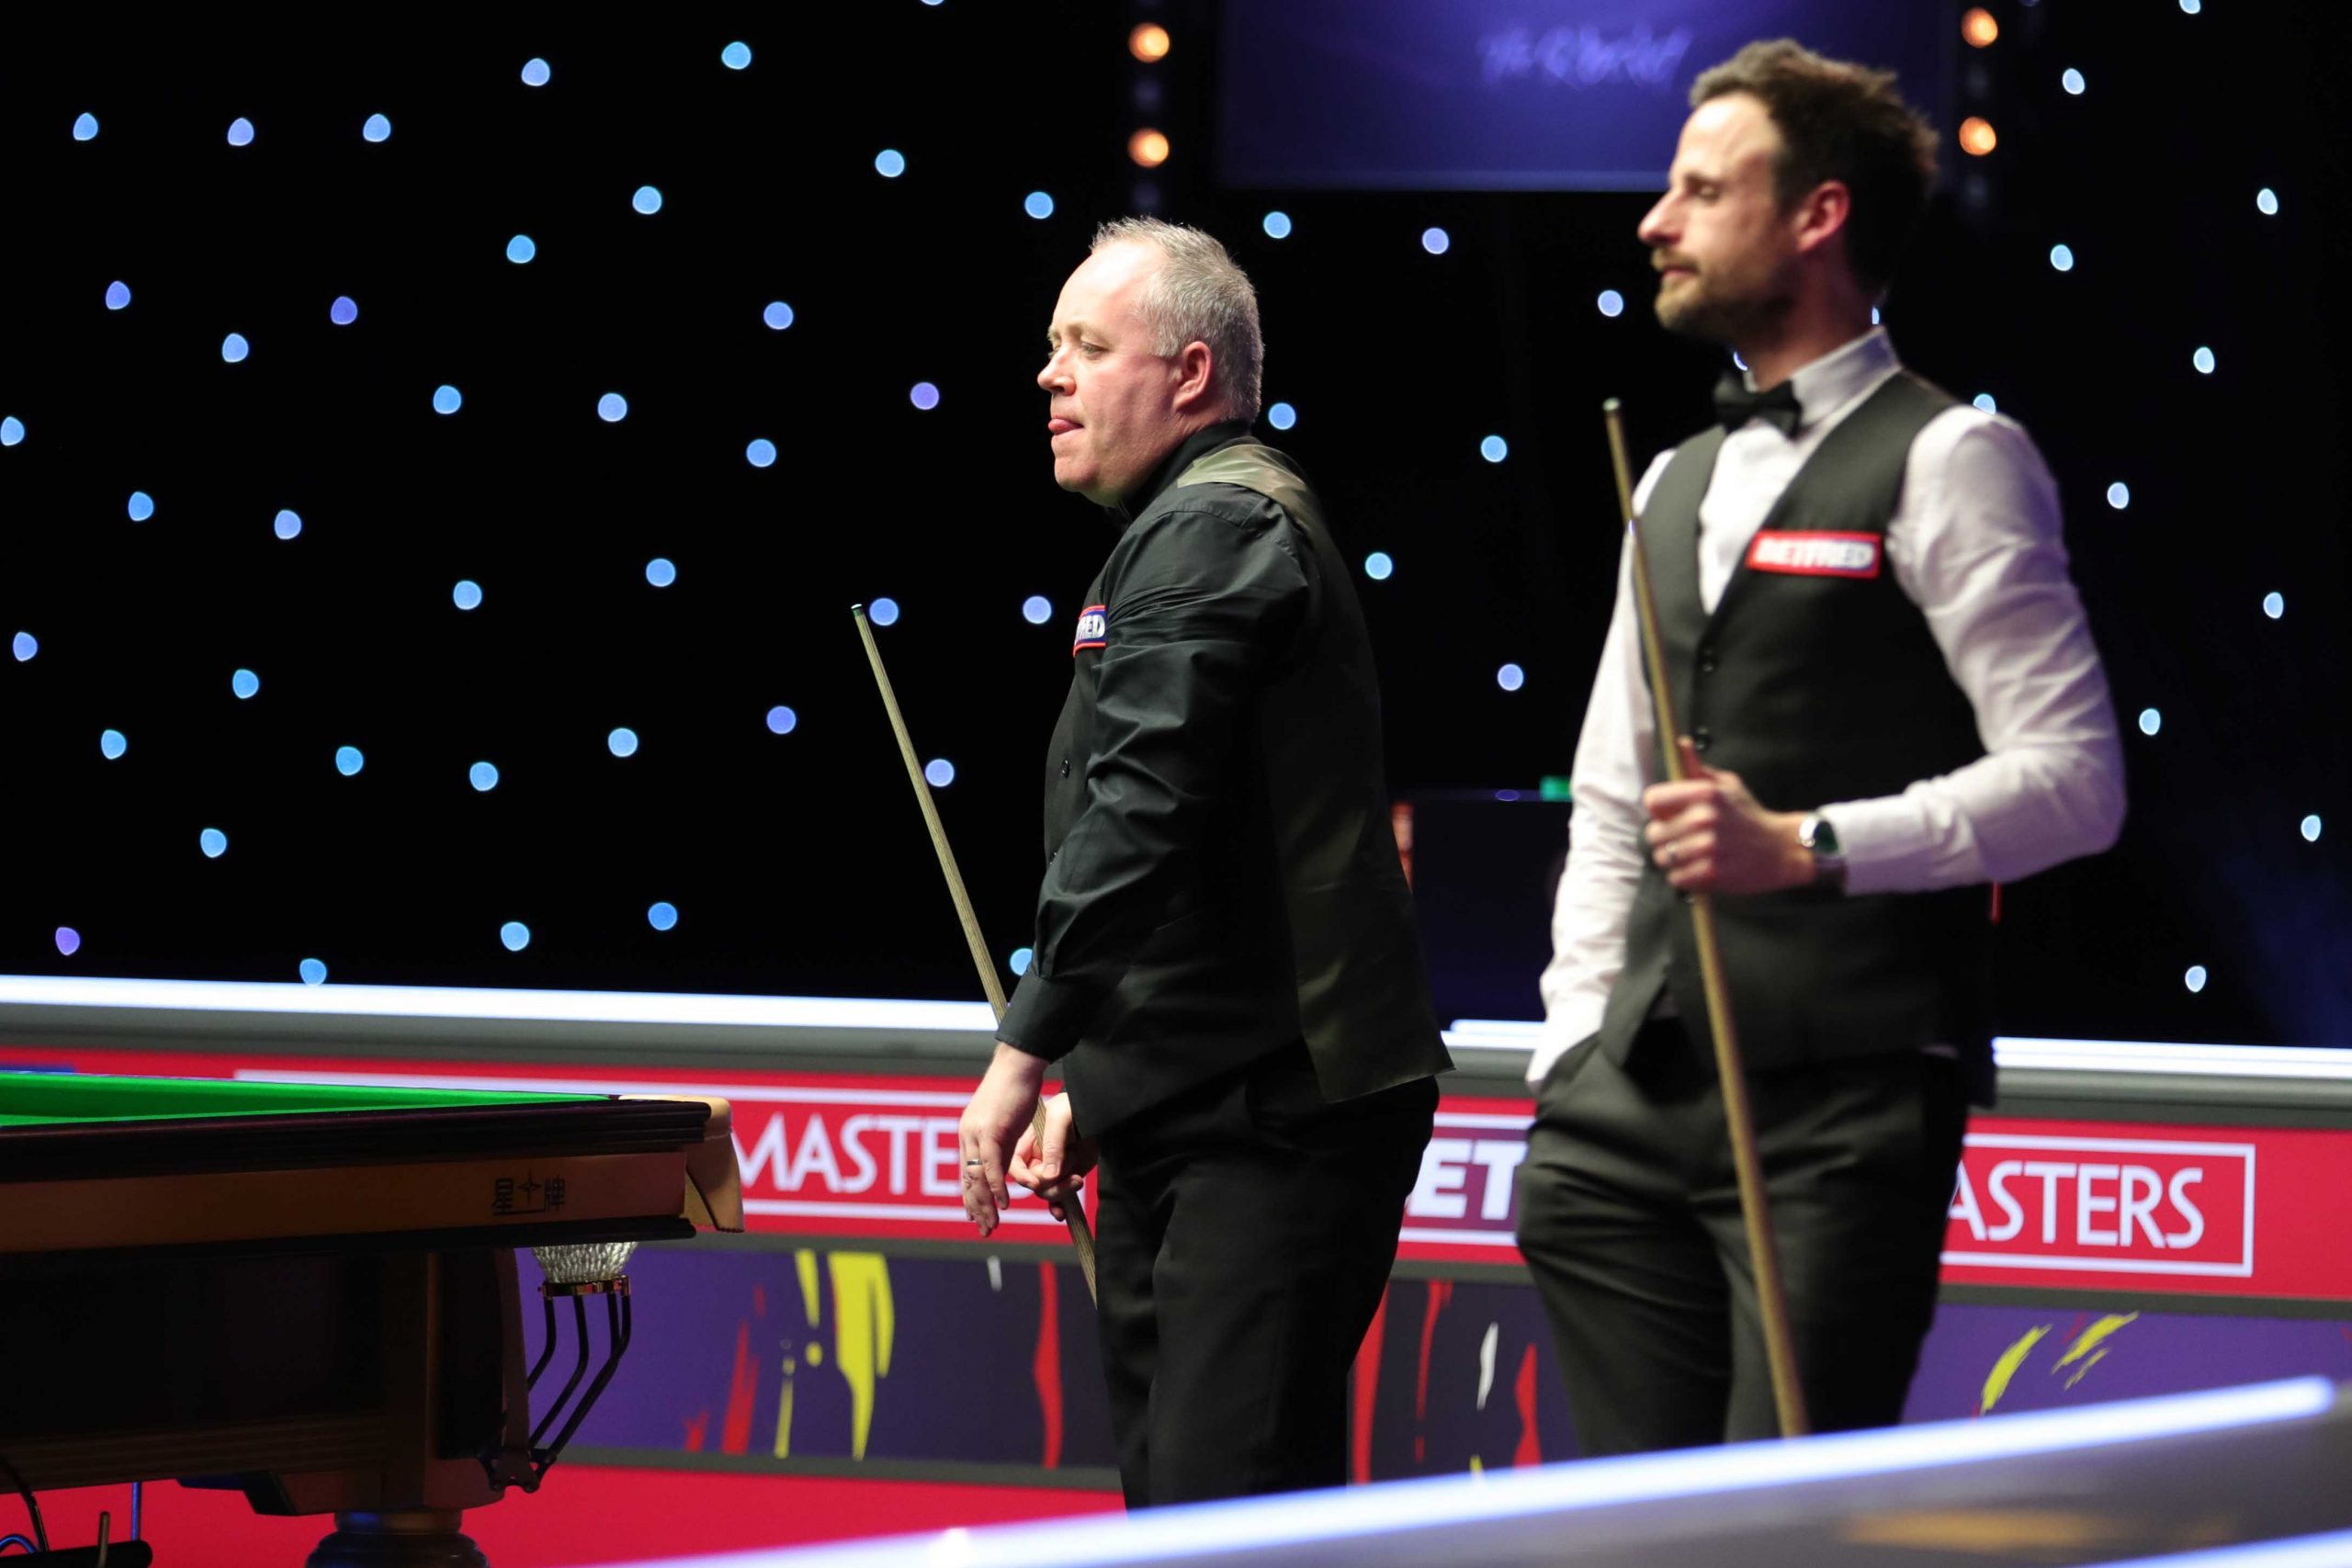 masters snooker final - photo #48